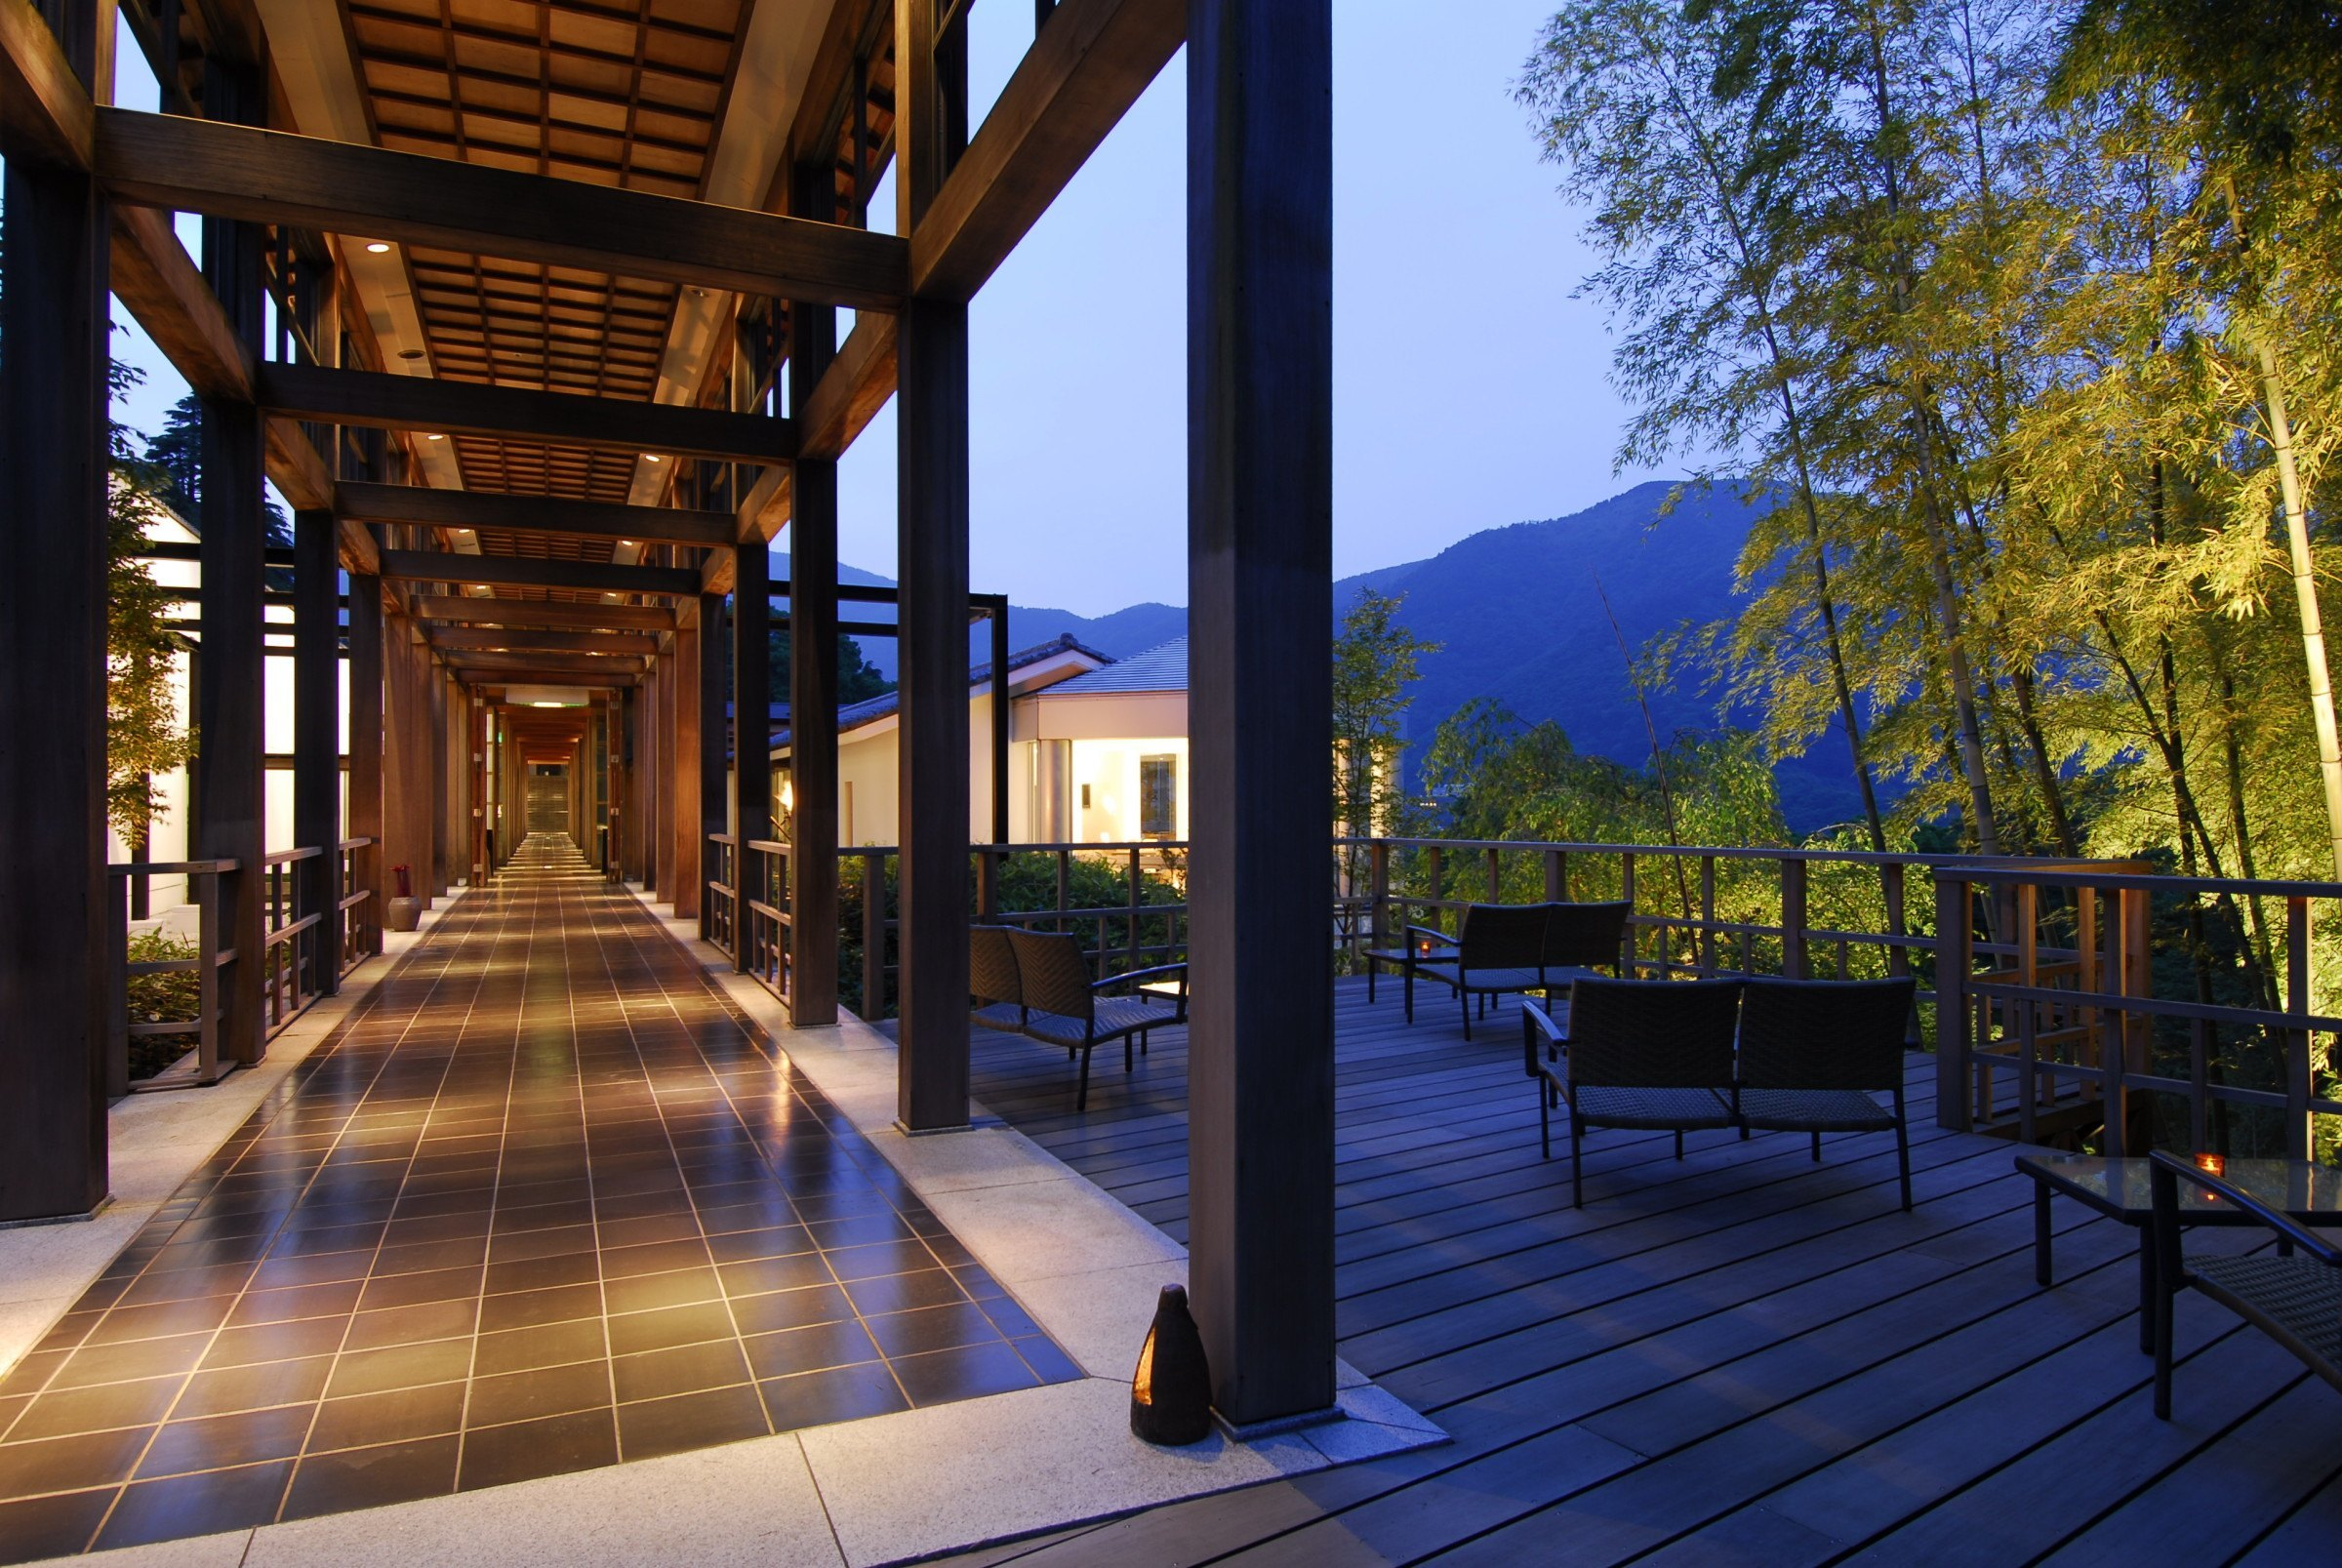 Our top 15 favourite ryokan inns | InsideJapan Tours Blog